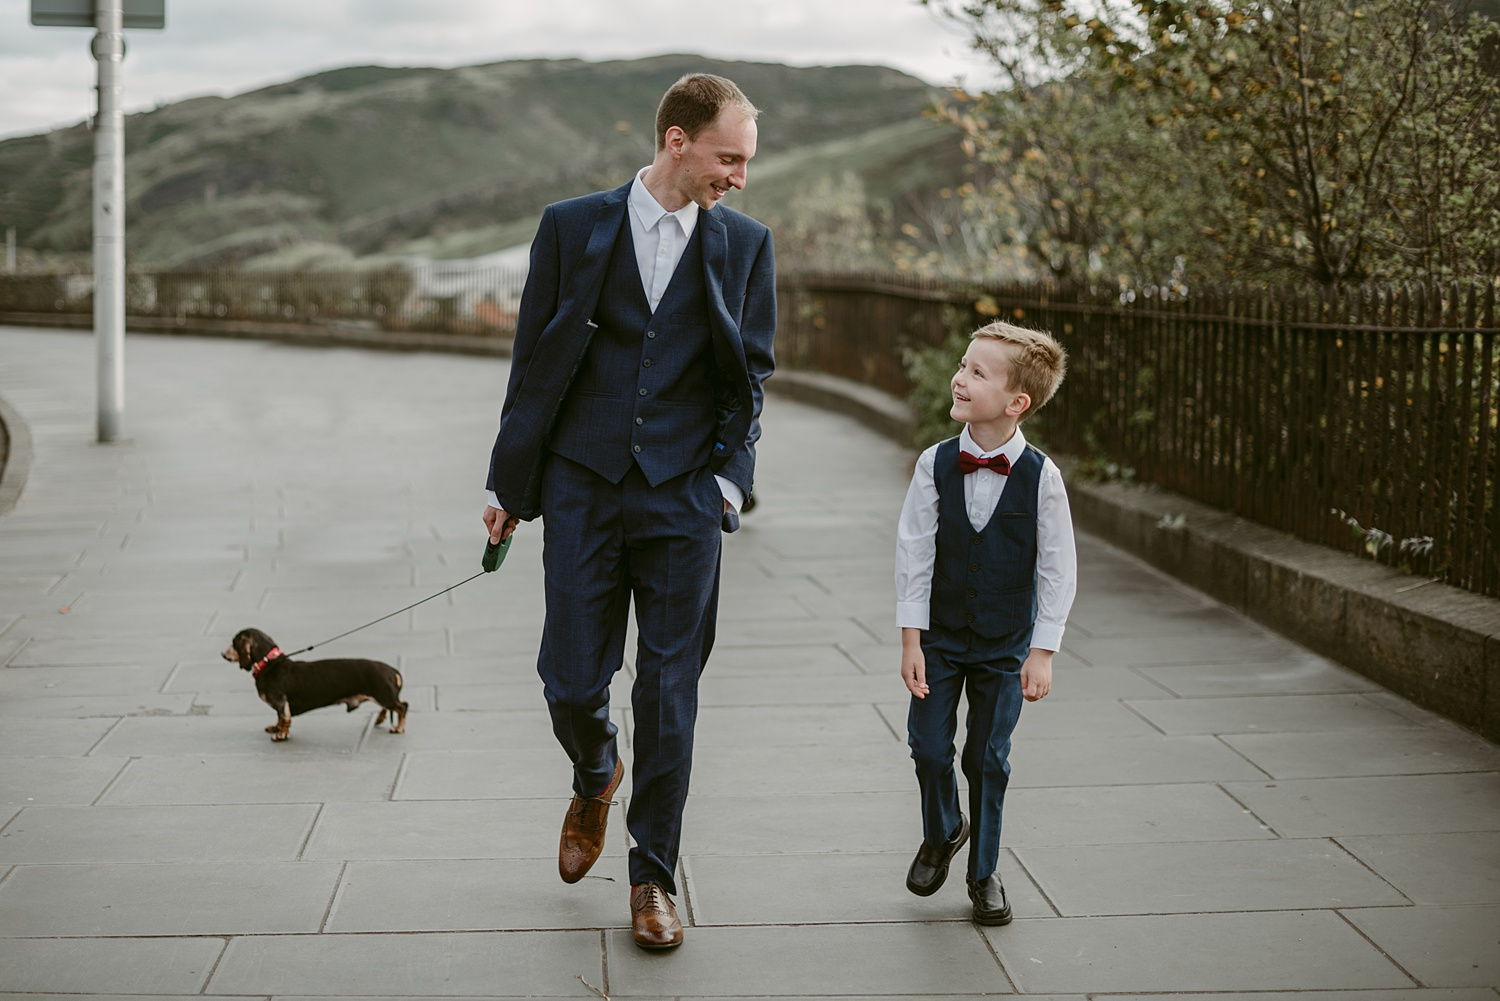 Claire-Fleck-Scottish-wedding-photography-2017__0034.jpg